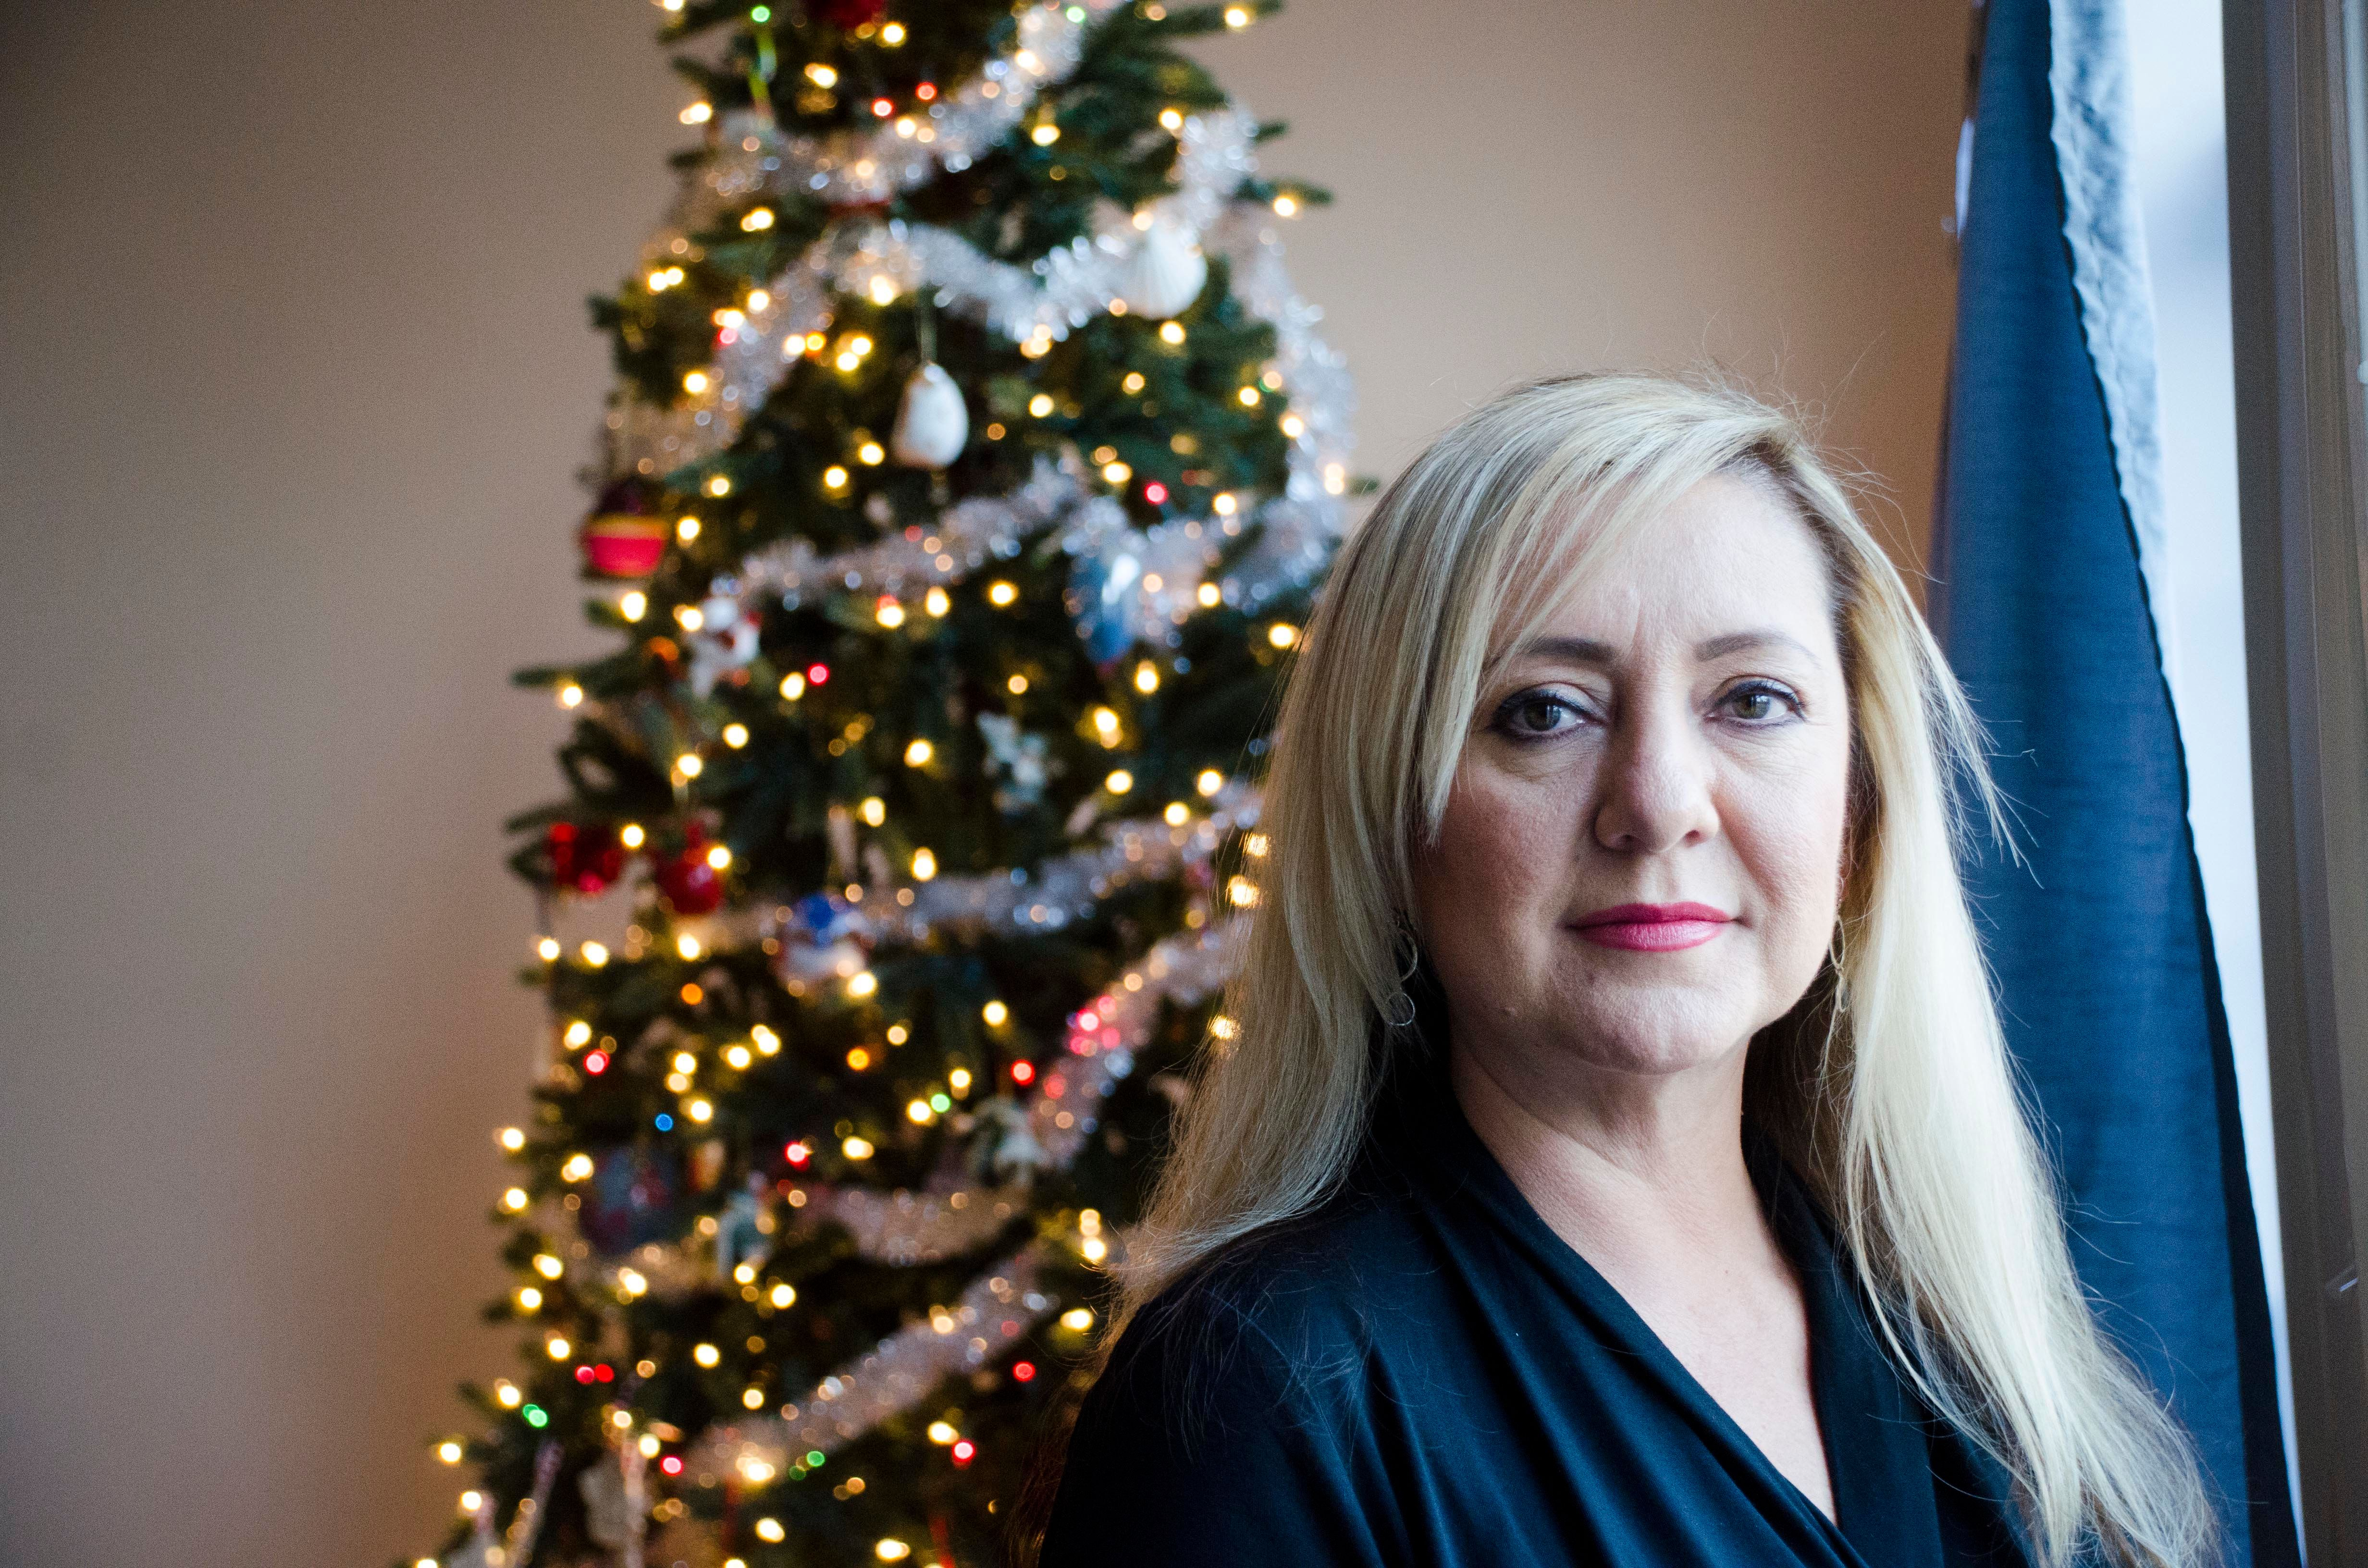 HAYMARKET, VA - DEC:  Lorena Bobbitt, who infamously cut off her husband's penis in 1993, pictured in her Virginia home. She now runs a non-profit organization that helps domestic violence victims in Haymarket, Virginia, on Dec. 8, 2016. (Photo by Melissa Jeltsen/Huffington Post) *** Local Caption ***